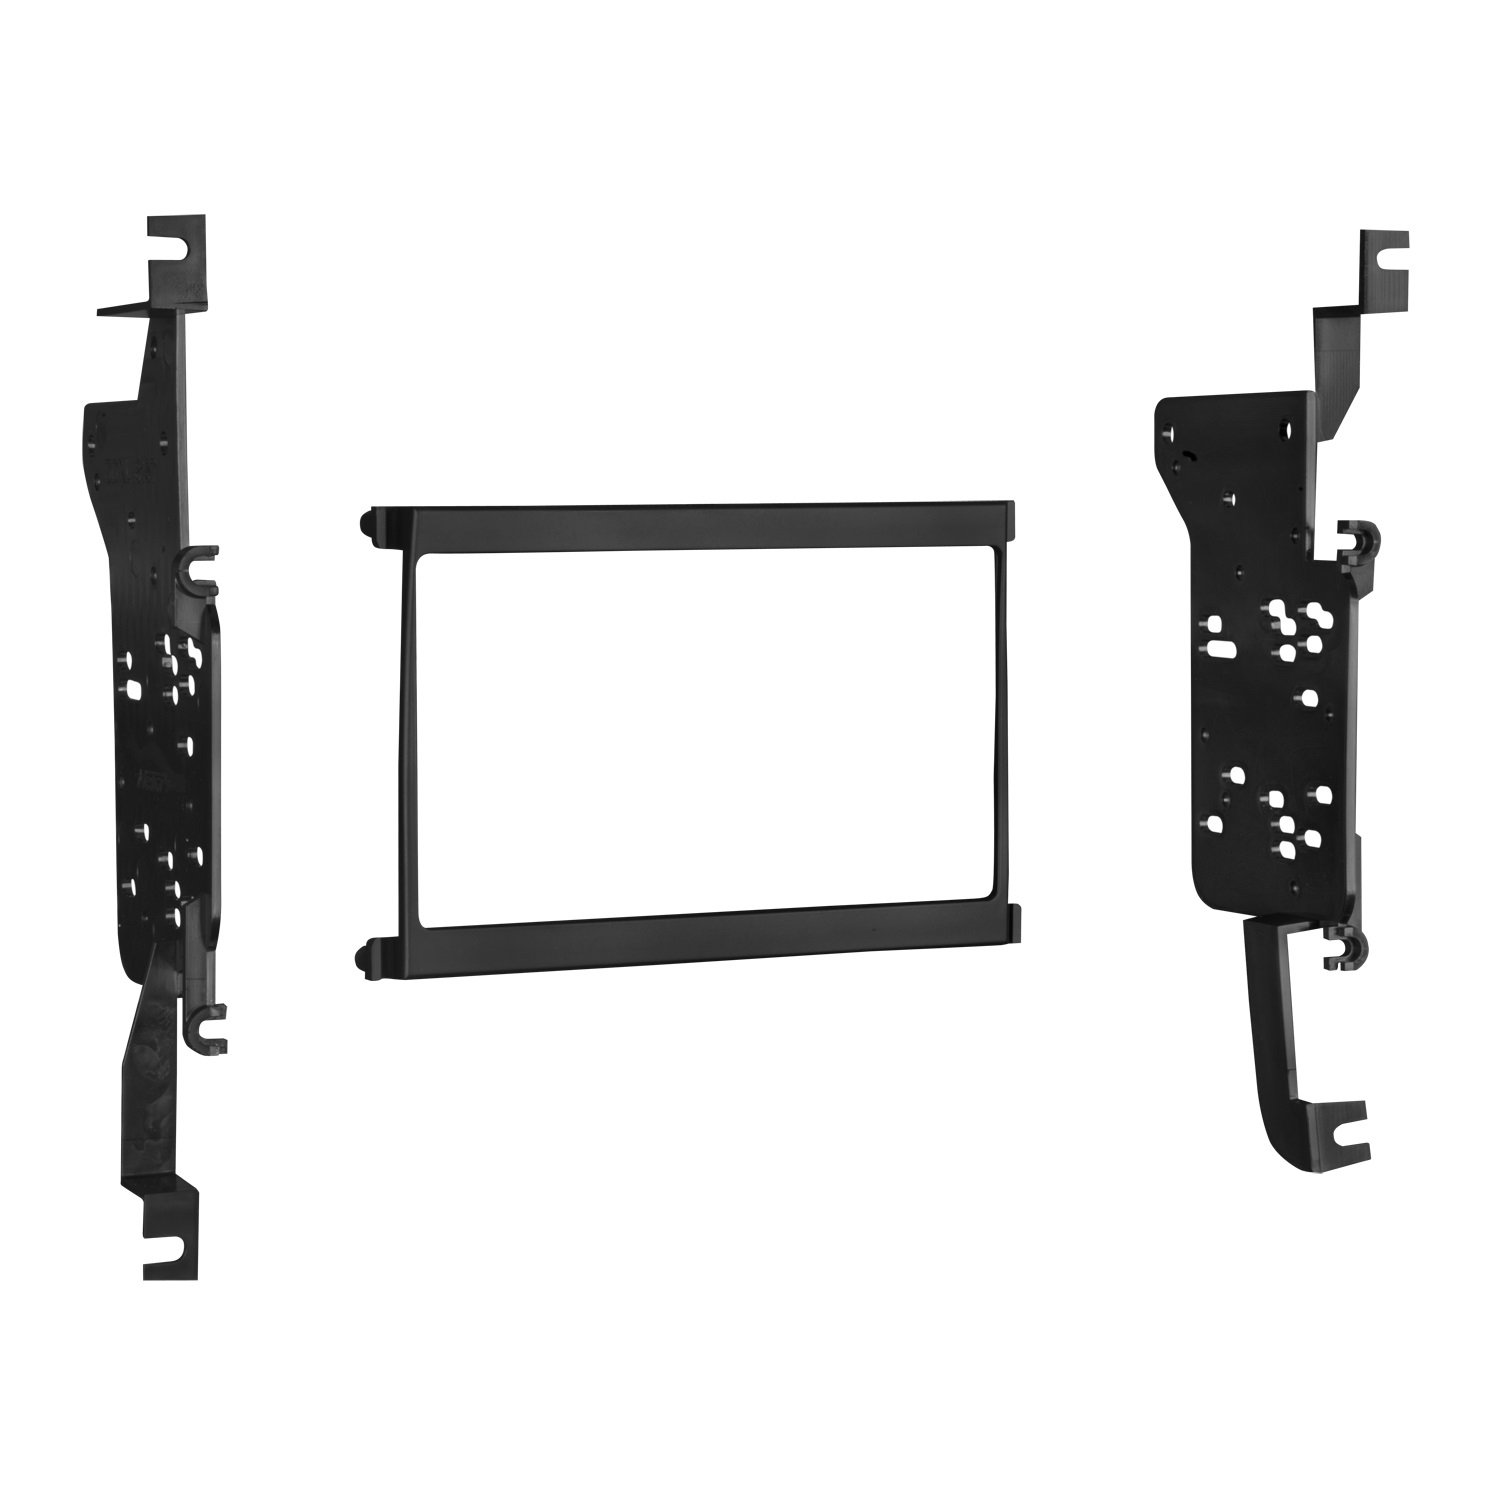 610sUO9N4yL._SL1500_ amazon com metra 95 8157b double din installation kit for 1992 1995 Lexus SC 400 Coupe at suagrazia.org